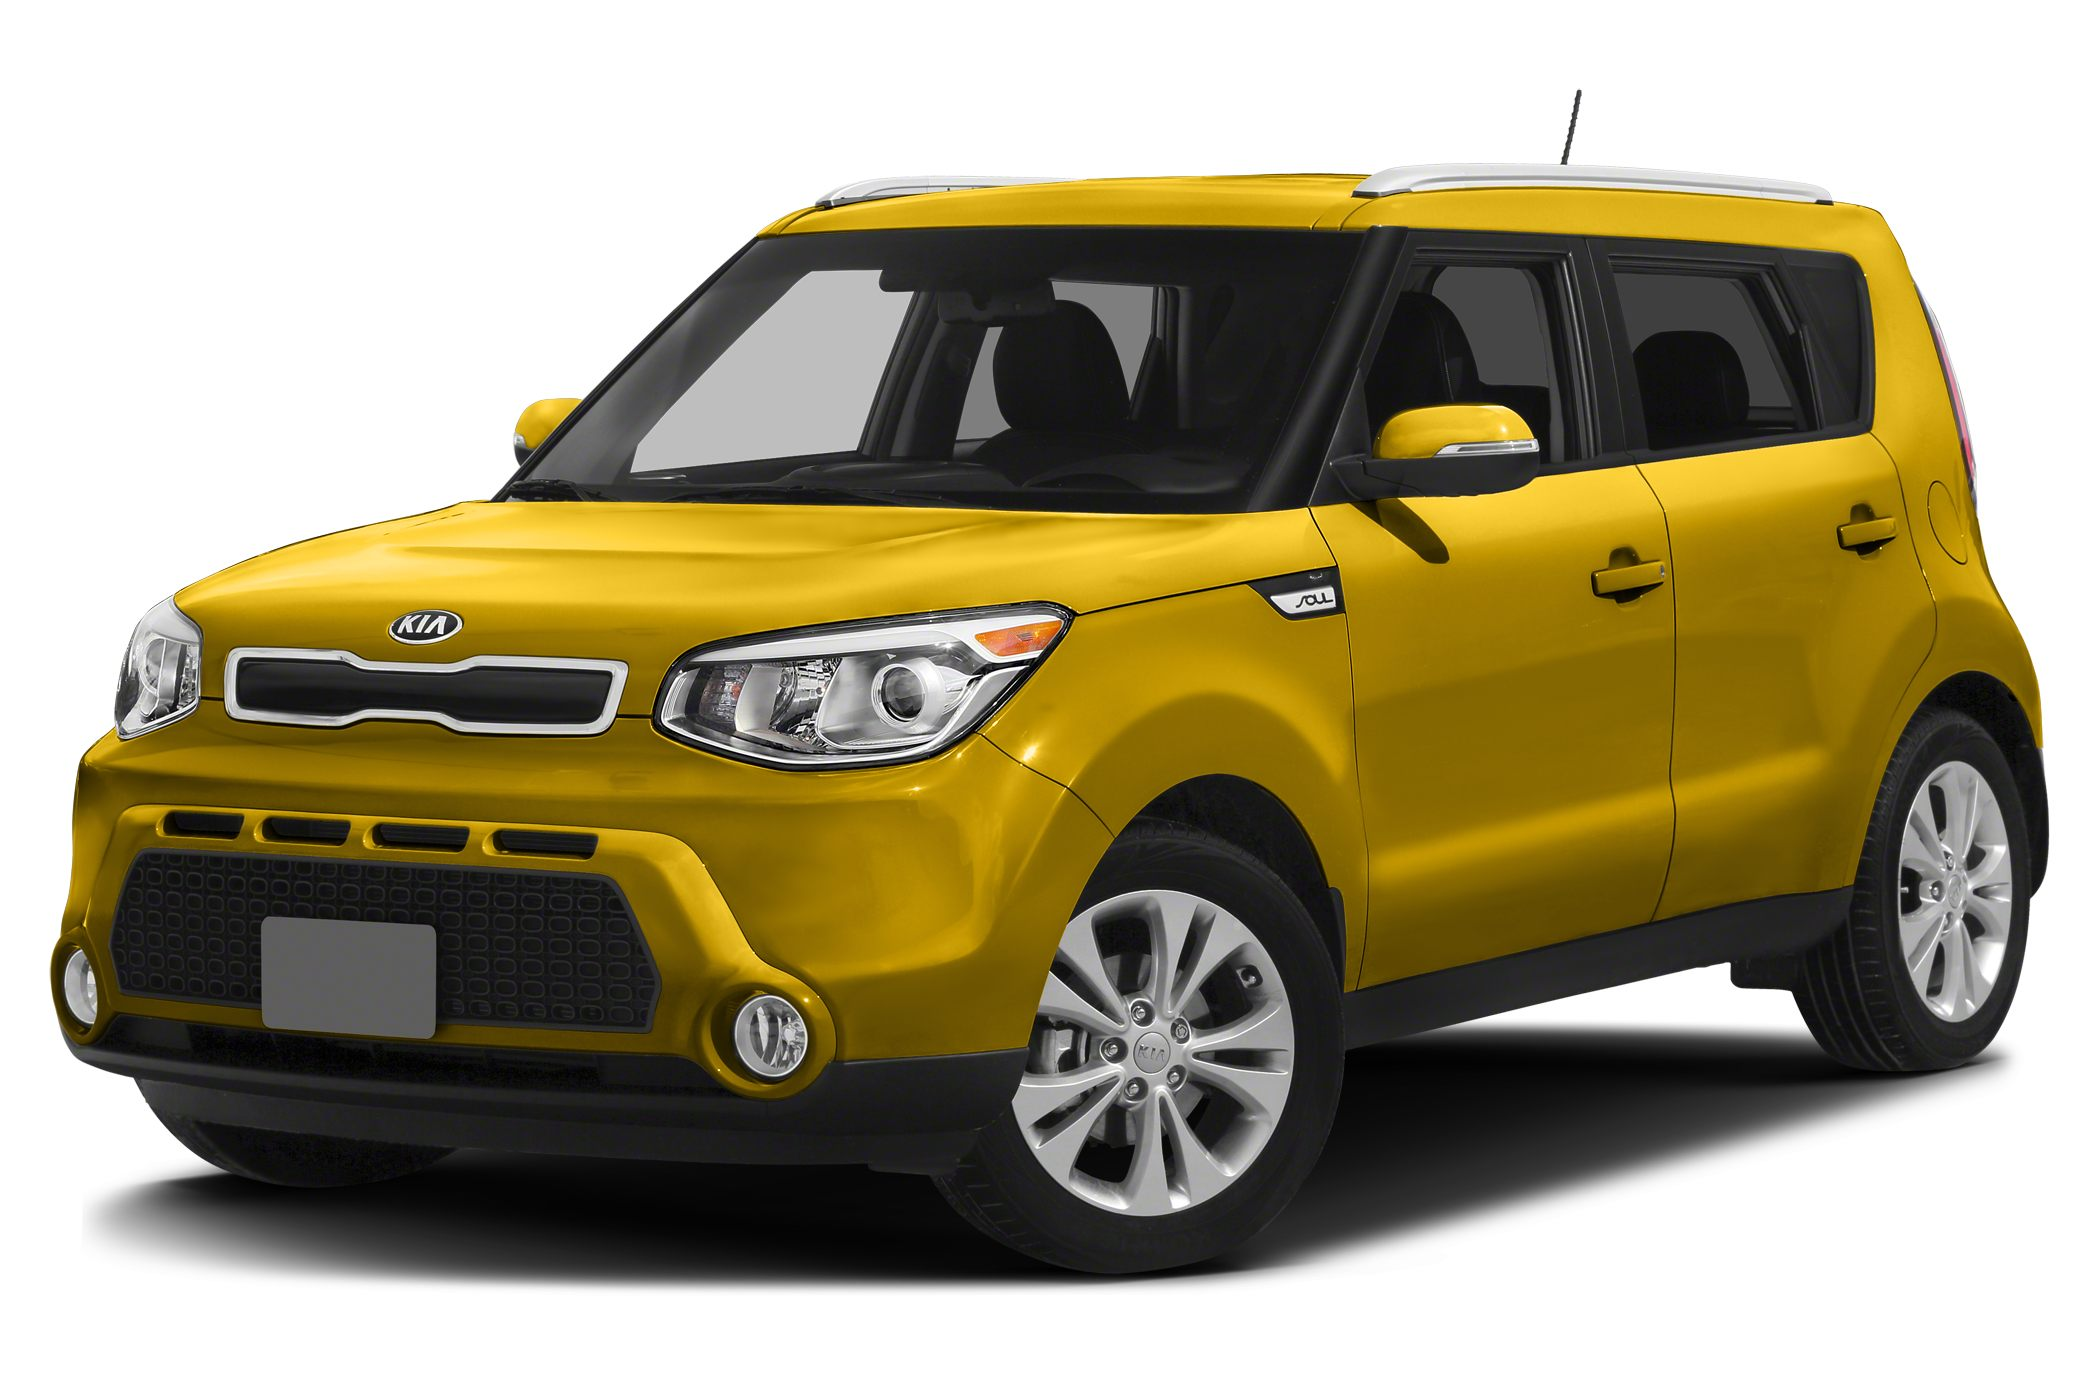 2015 Kia Soul   NEW BRAKES and 1 OWNER Move quickly Welcome to Empire Hyundai This 2015